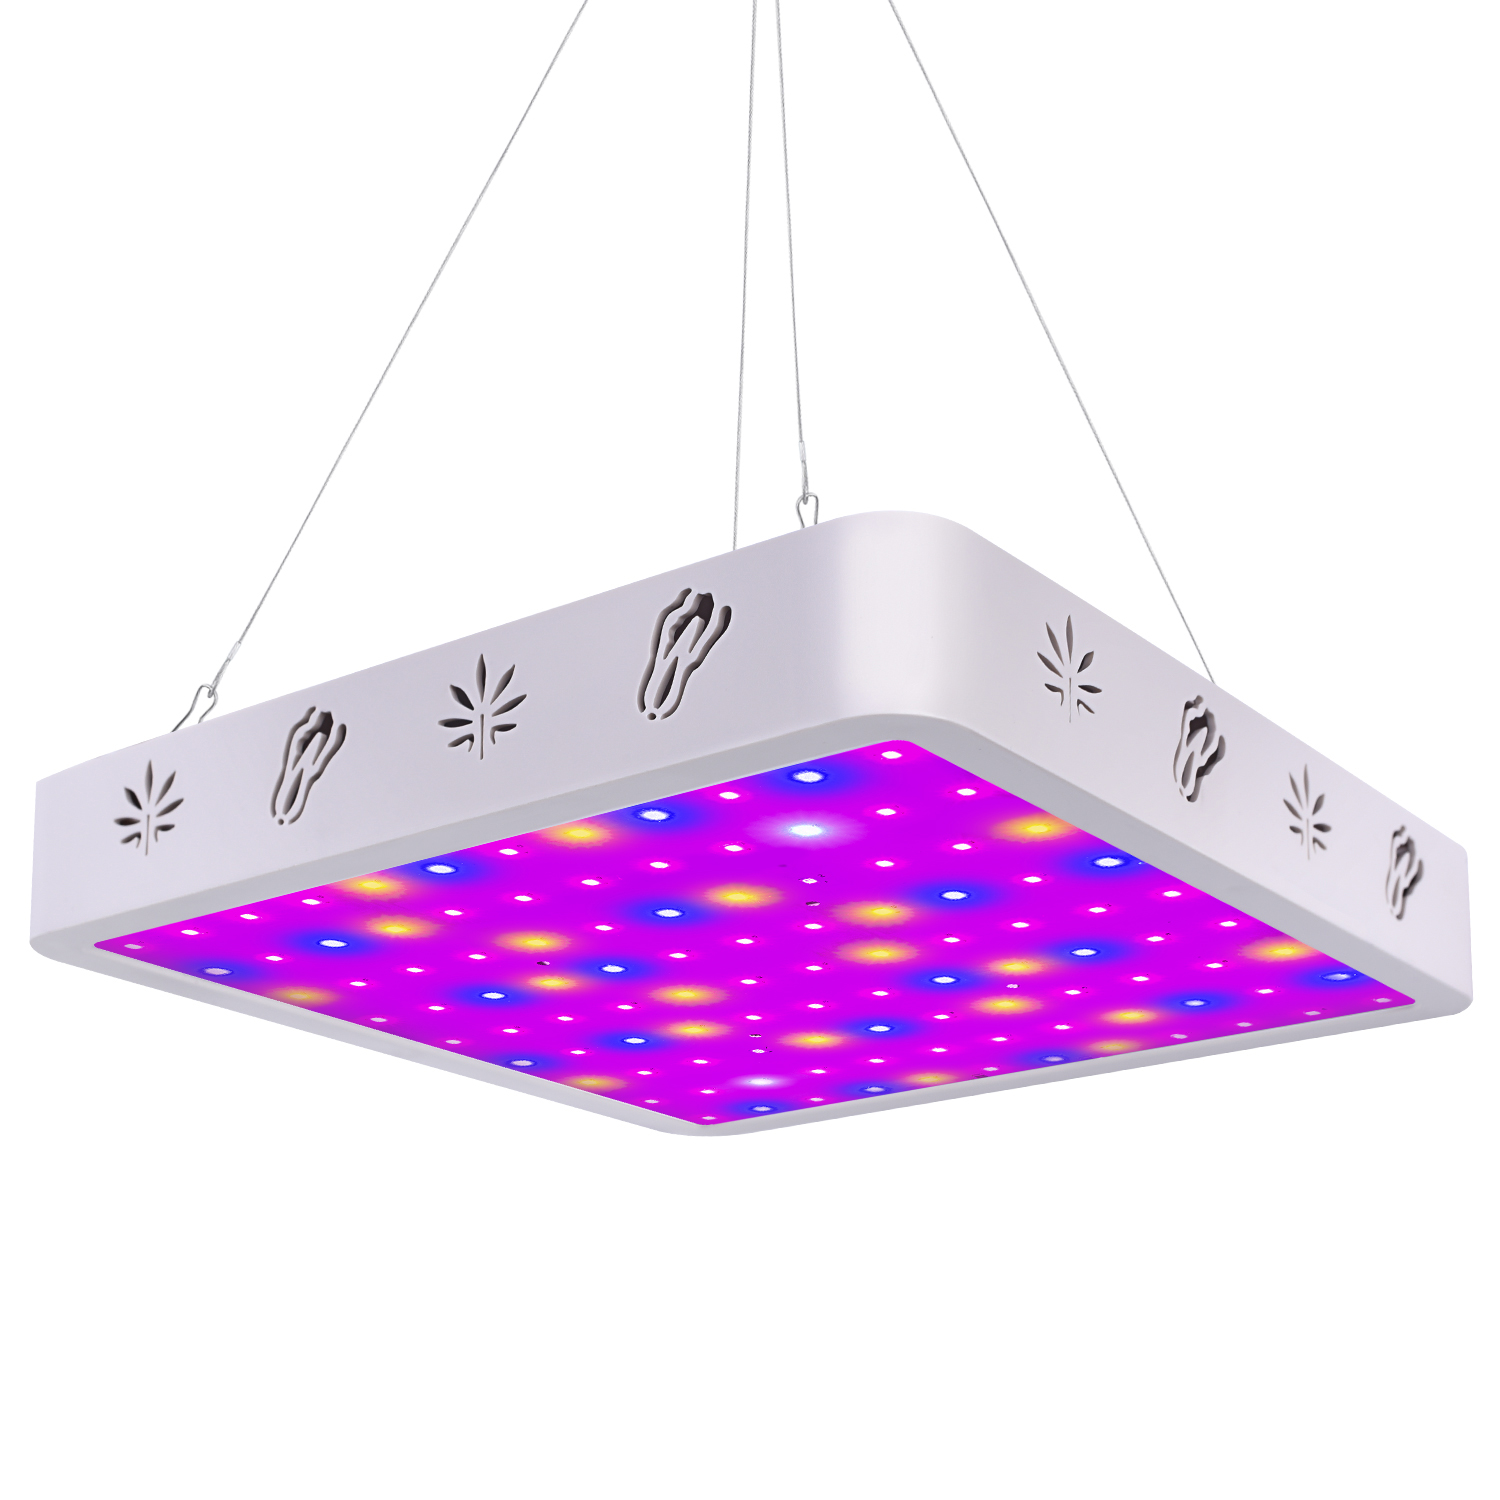 Details about V99GROW 1000W LED Grow Light Panel Lamp Full Spectrum  Hydroponic Plant Growing G